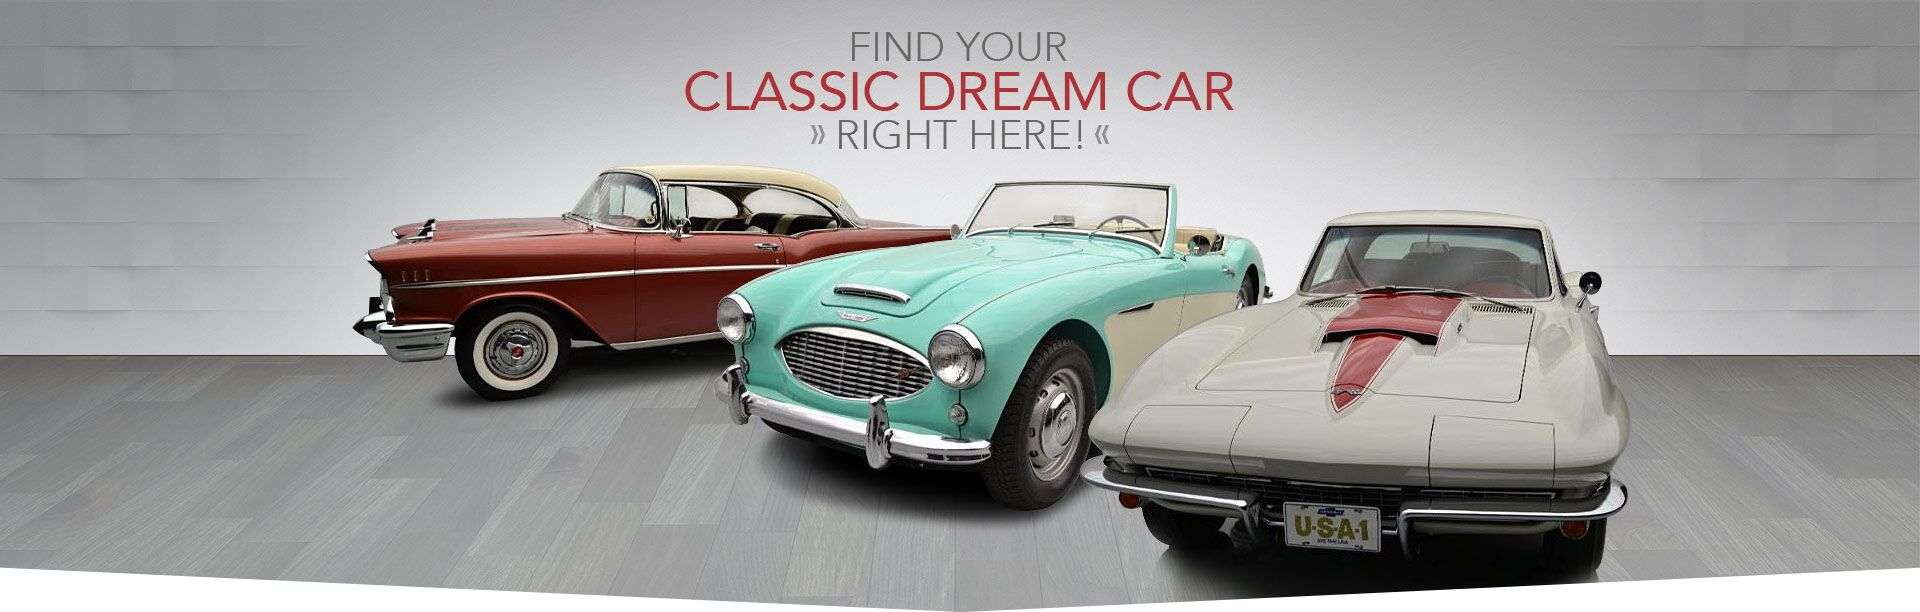 classic car dealership hickory nc used cars paramount classic cars. Black Bedroom Furniture Sets. Home Design Ideas